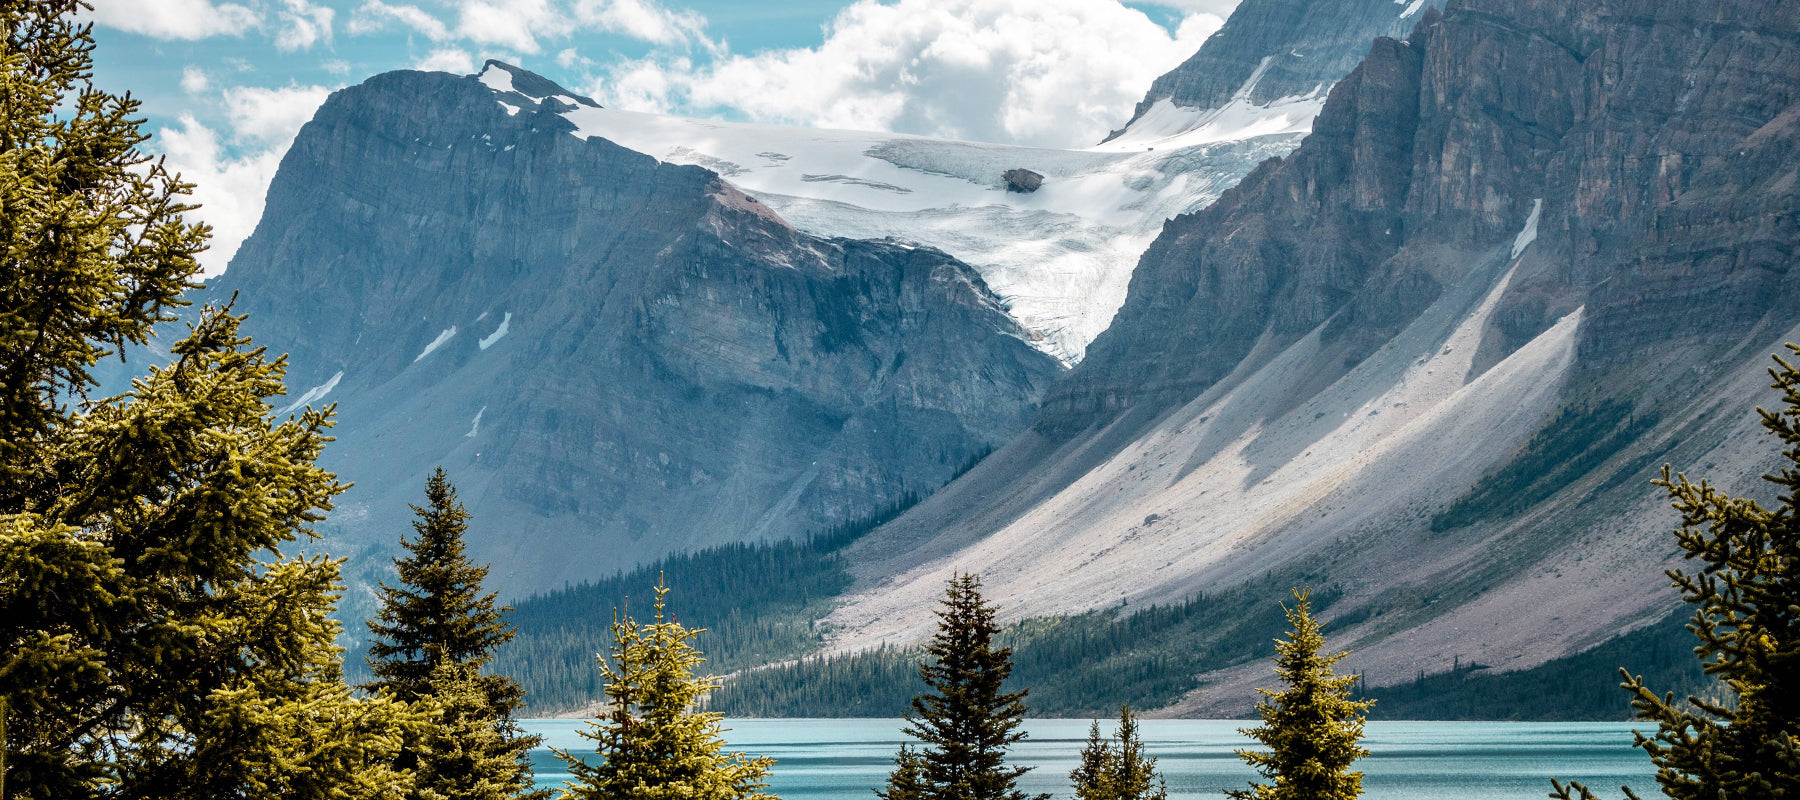 image of the Rocky Mountains in Canada.